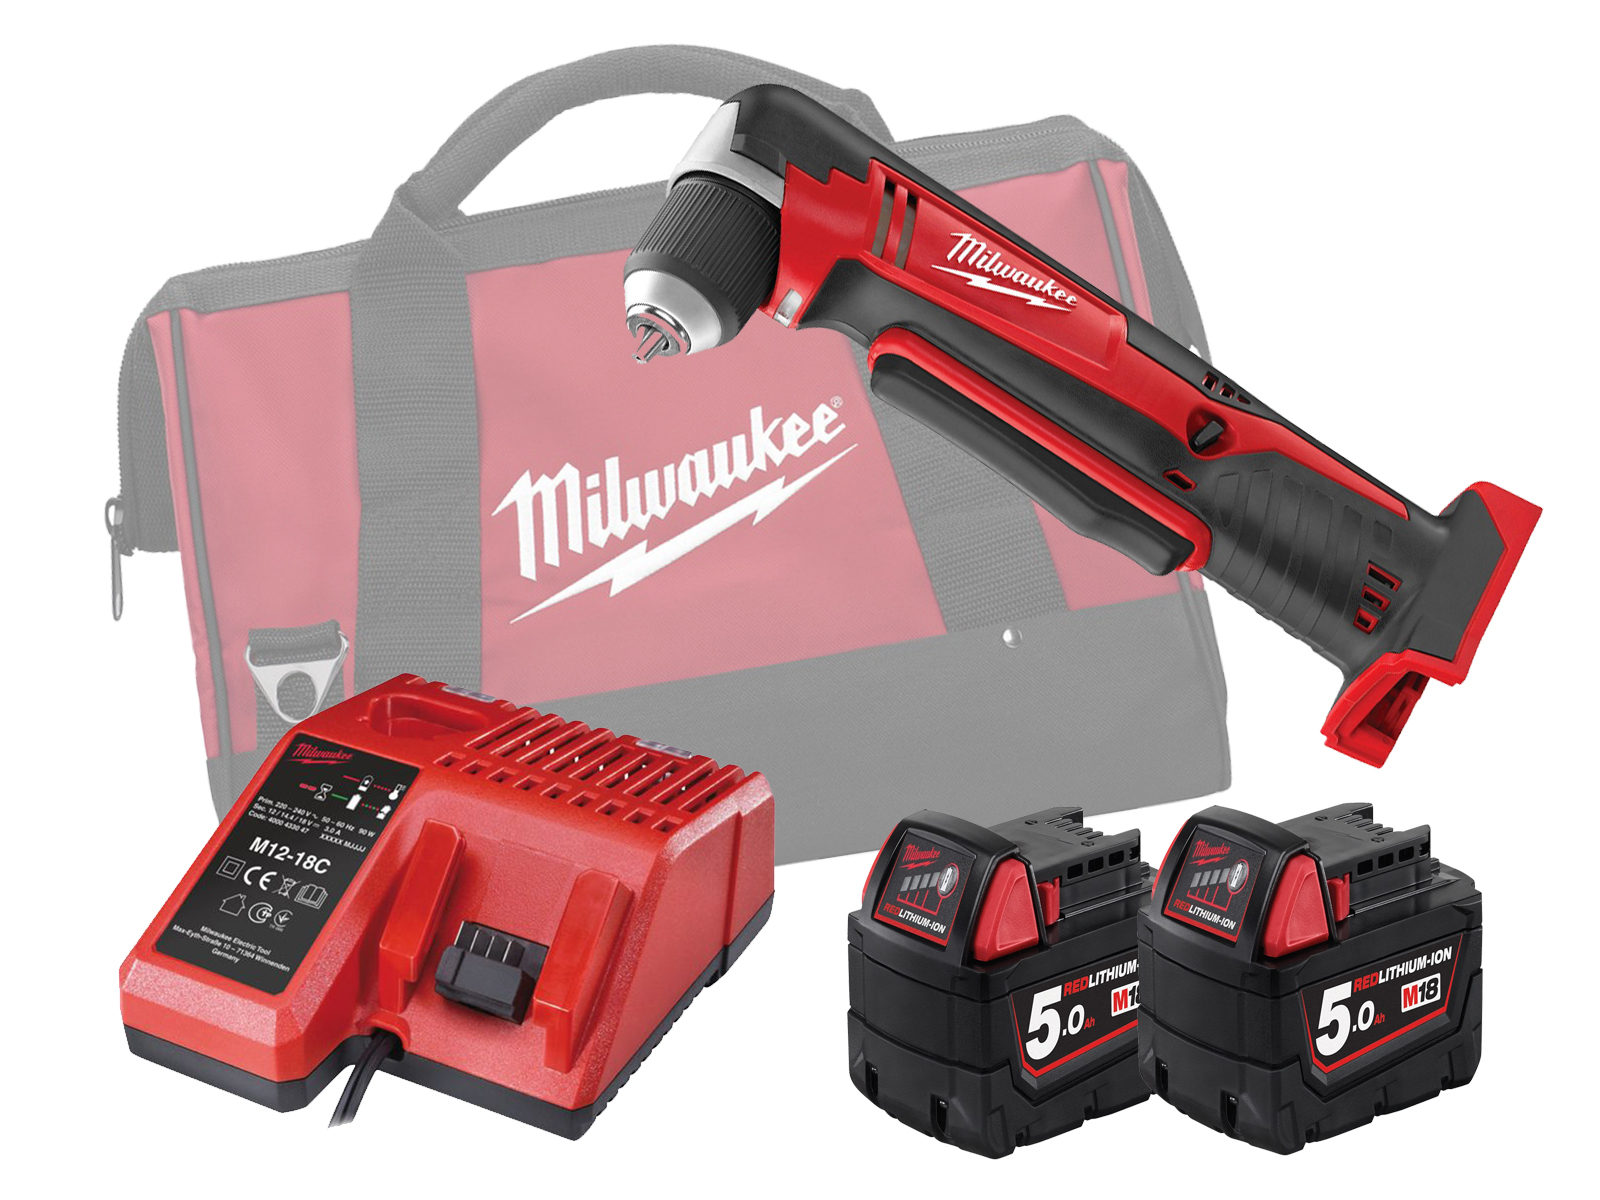 MILWAUKEE 18V COMPACT RIGHT ANGLE DRILL - C18RAD - 5.0AH PACK